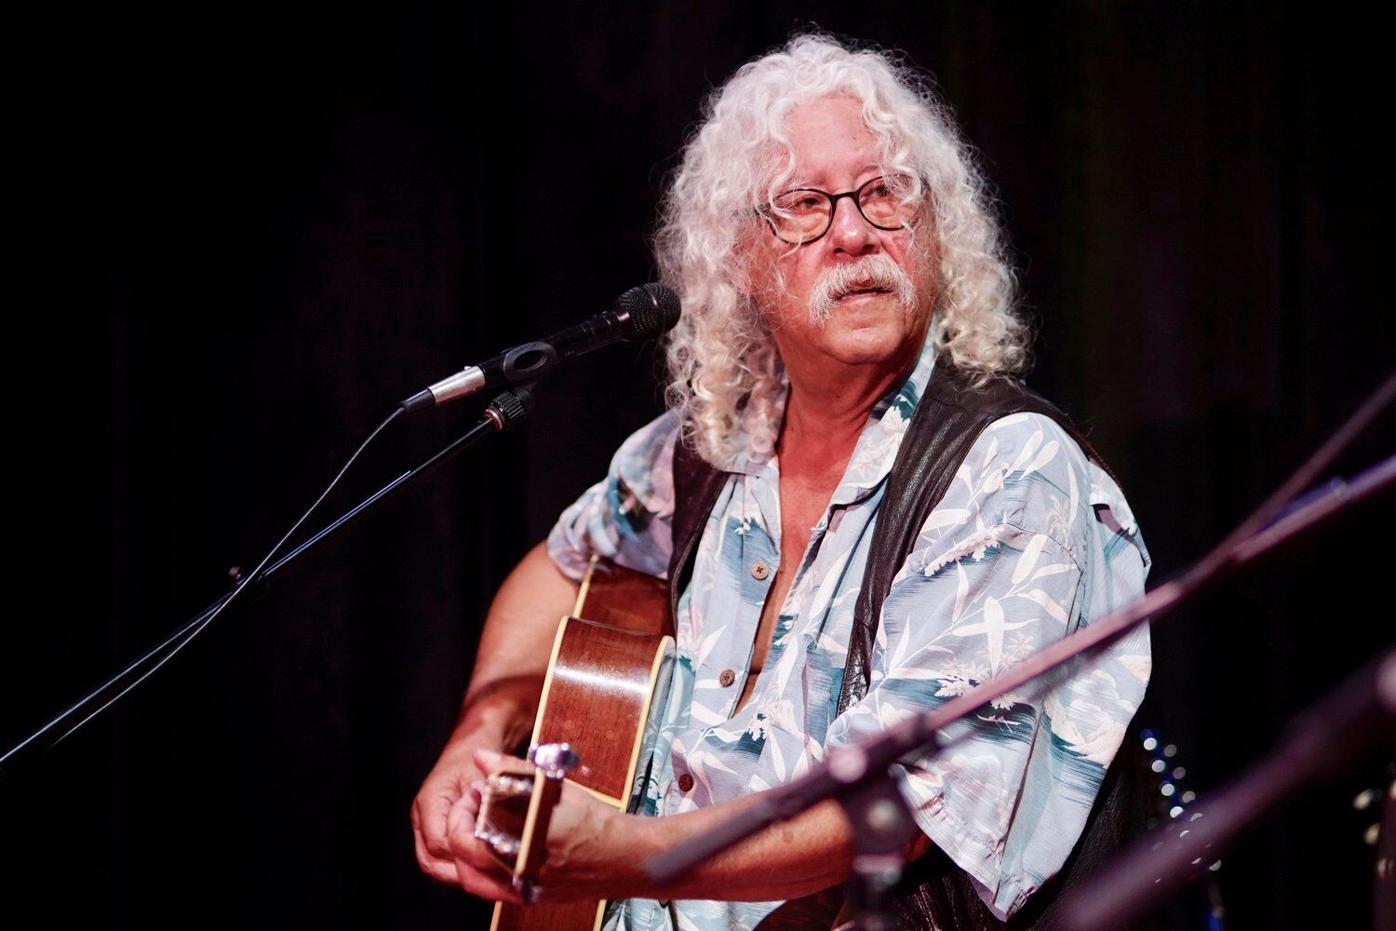 A look back at the original Eagle story about Arlo Guthrie's arrest